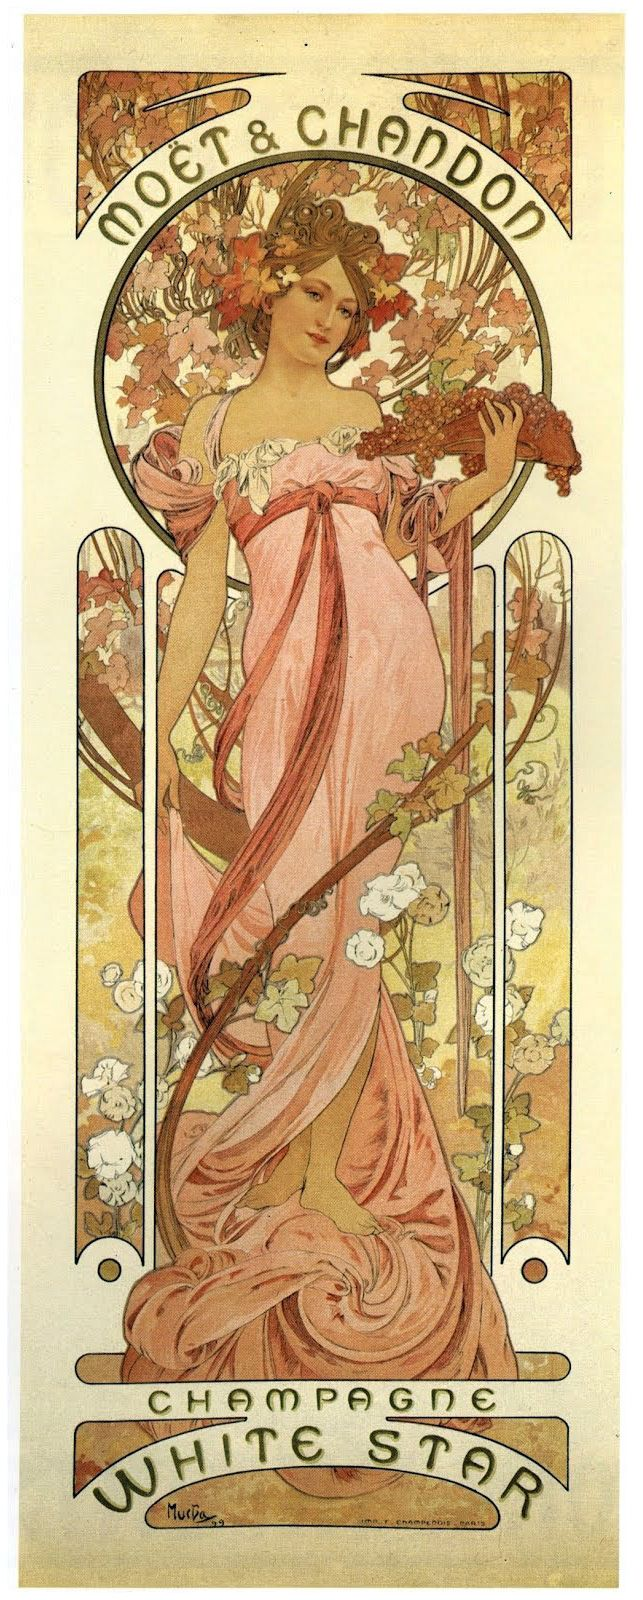 Alphonse Mucha's M & C Champagne label for the White Star Line: RMS Olympic (1911) SS Belgic (1911) SS Zealandic (1911) RMS Titanic (1912) SS Ceramic (1913) etc.